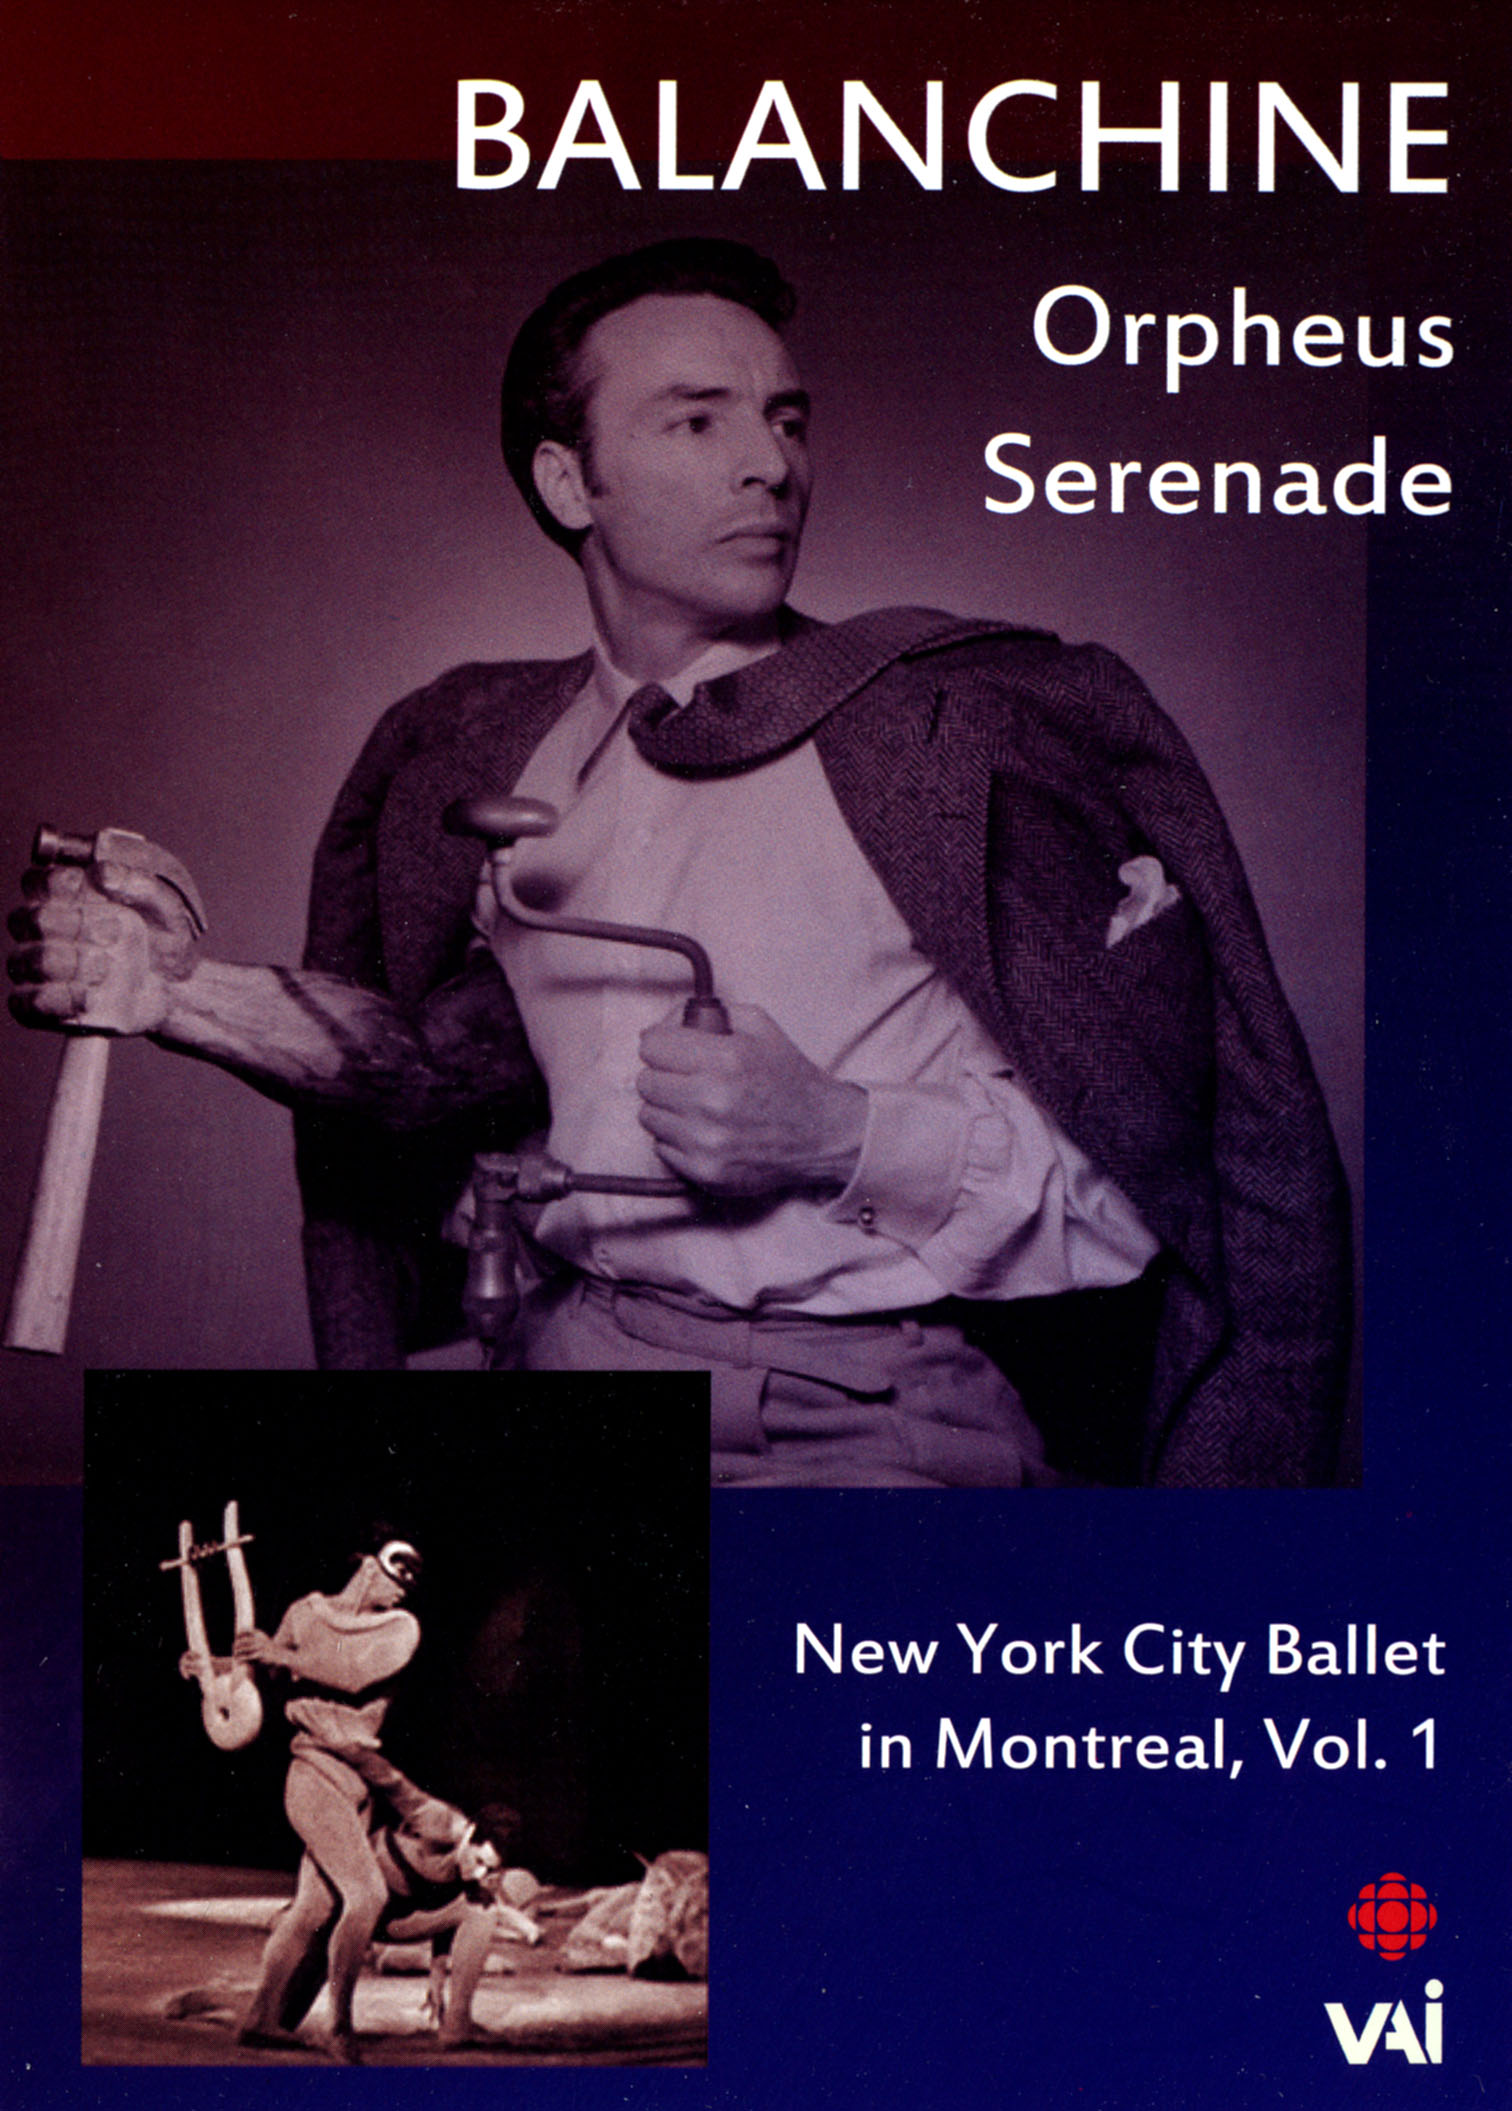 New York City Ballet in Montreal, Vol. 1: Balanchine